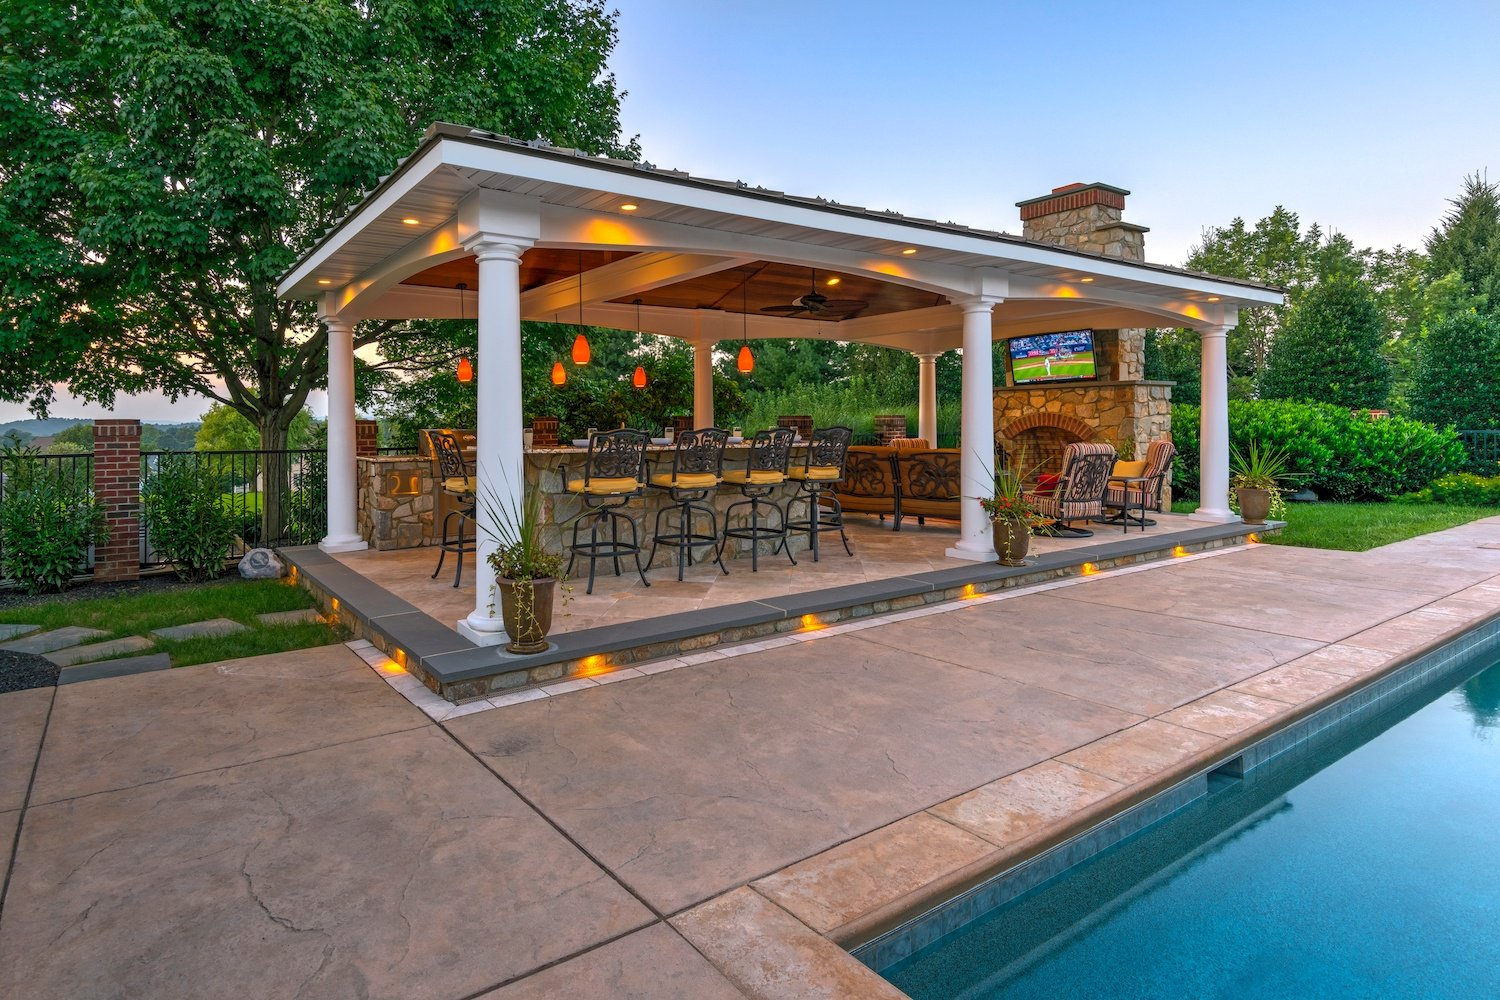 outdoor-kitchen-pavilion-pool-fireplace-07